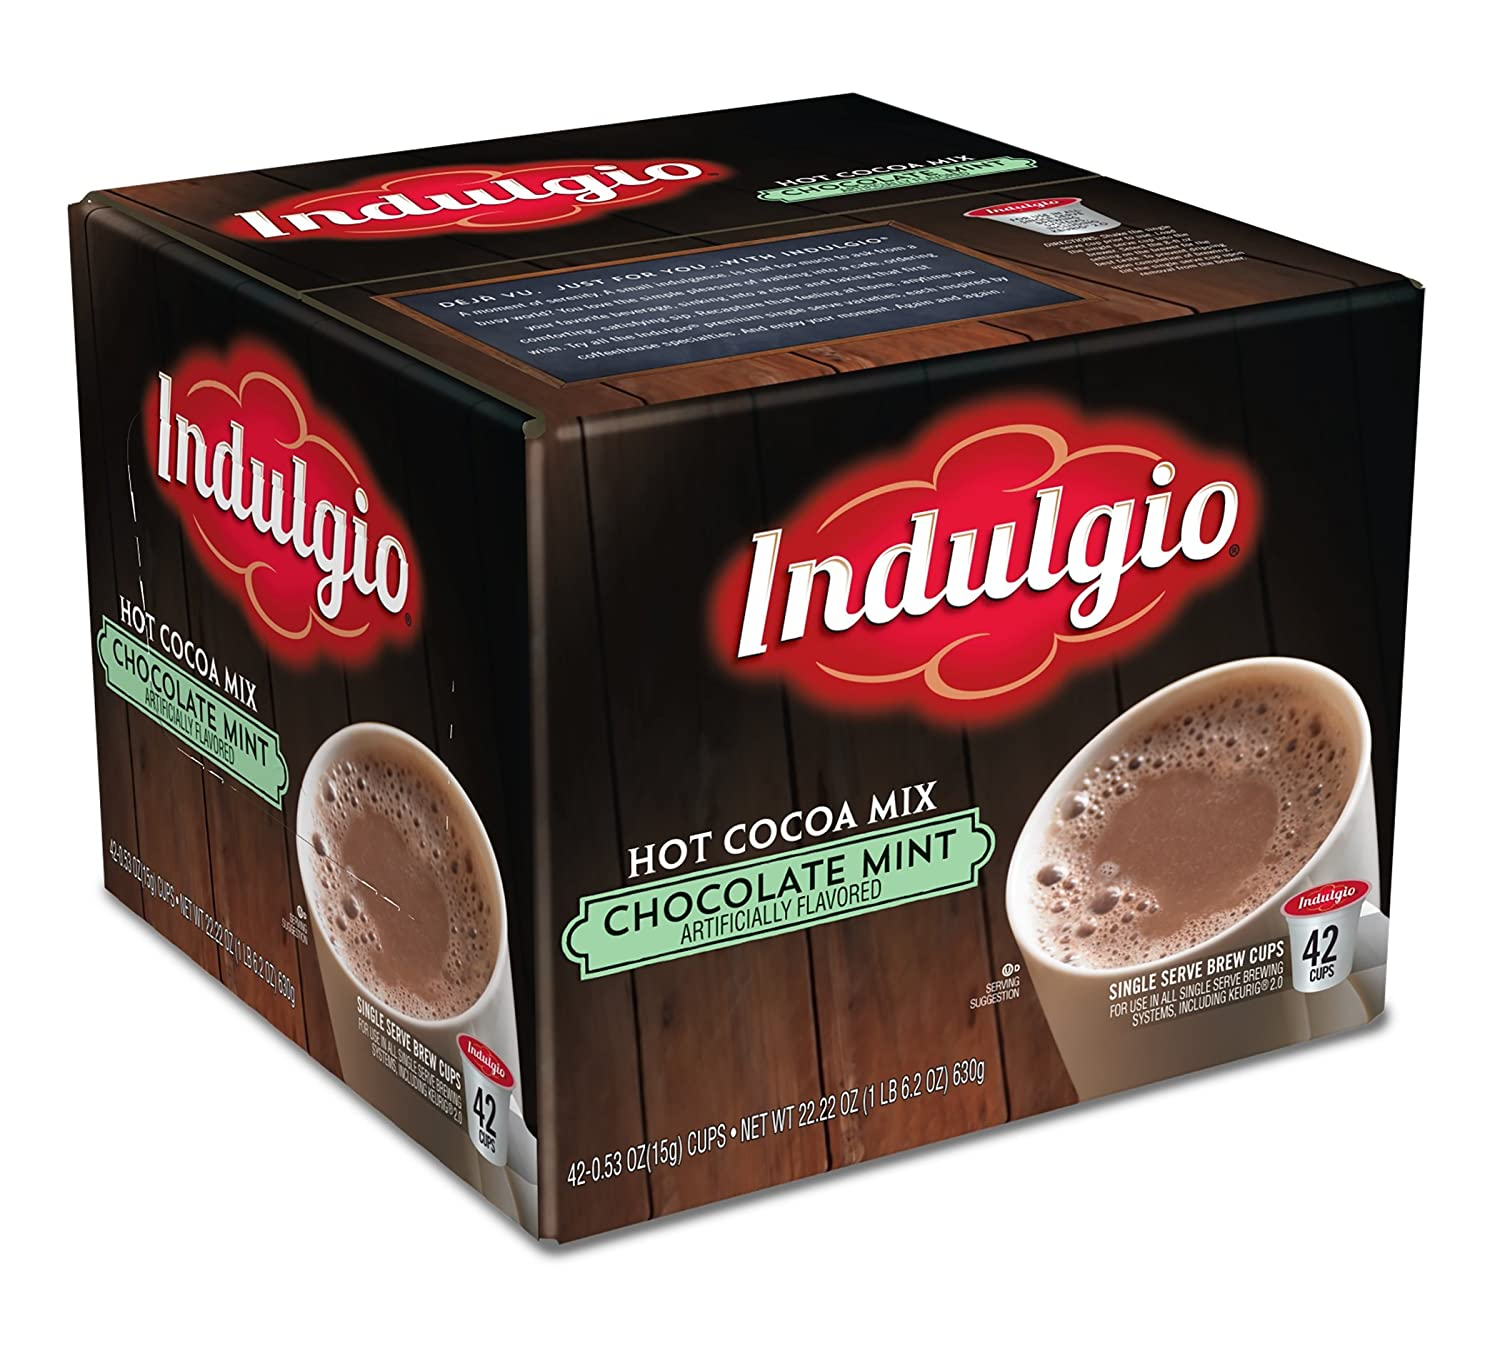 Indulgio Chocolate Mint Hot Cocoa Single Serve K-cup, 42 Count (Compatible with 2.0 Keurig Brewers)